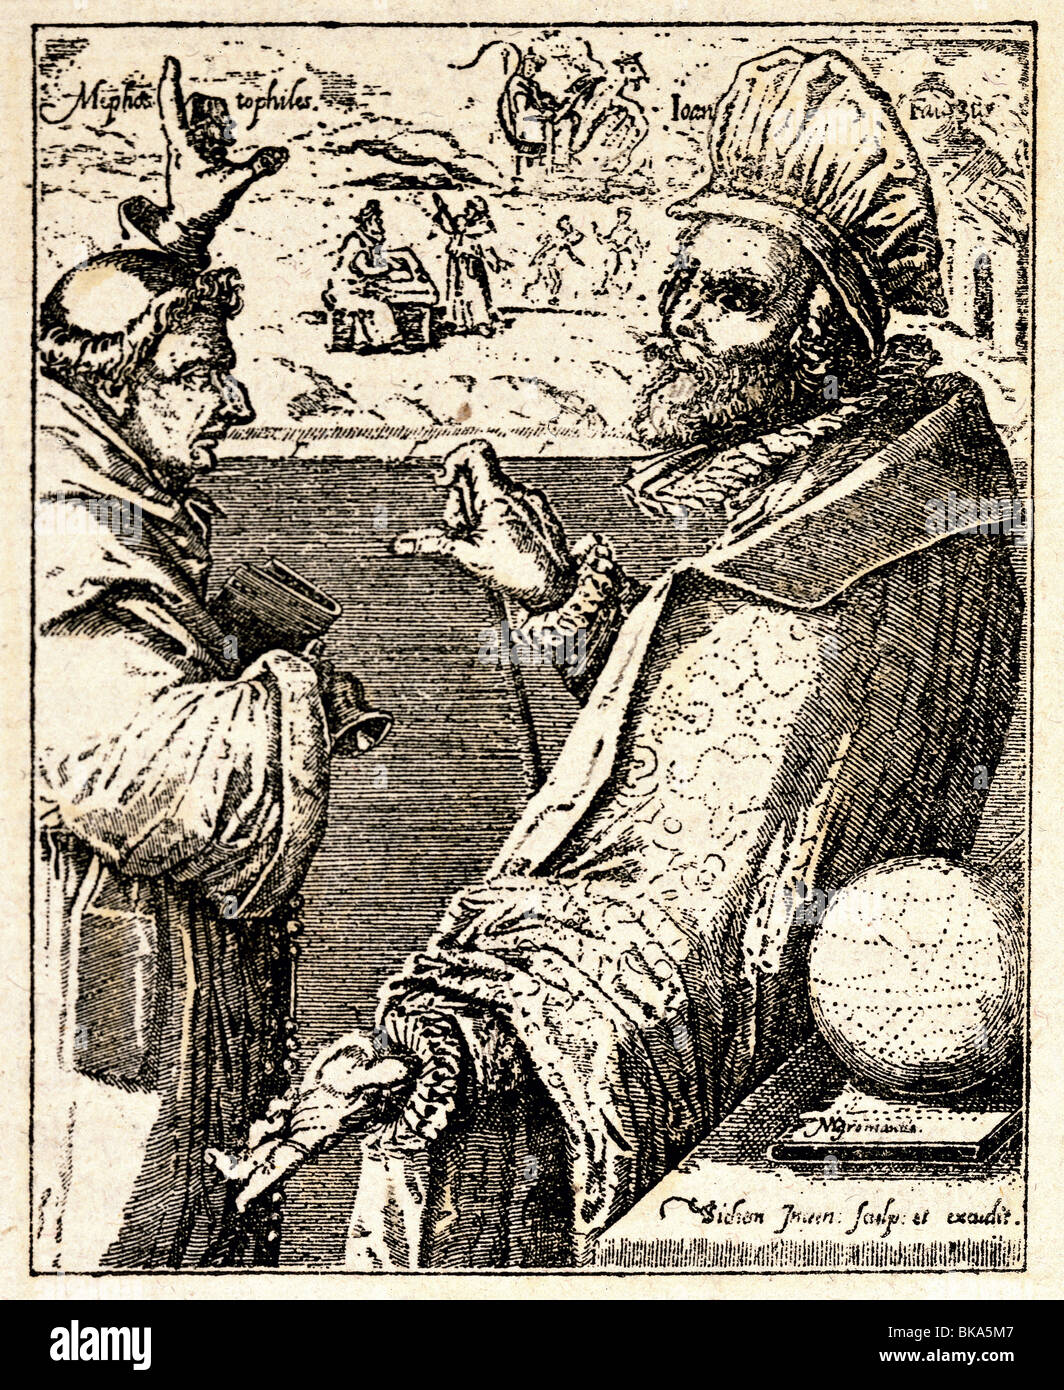 Faust, Johannes, birth name Georg, circa 1480 - circa 1540, German magician, astrologer, fortuneteller, with Mephistopheles - Stock Image